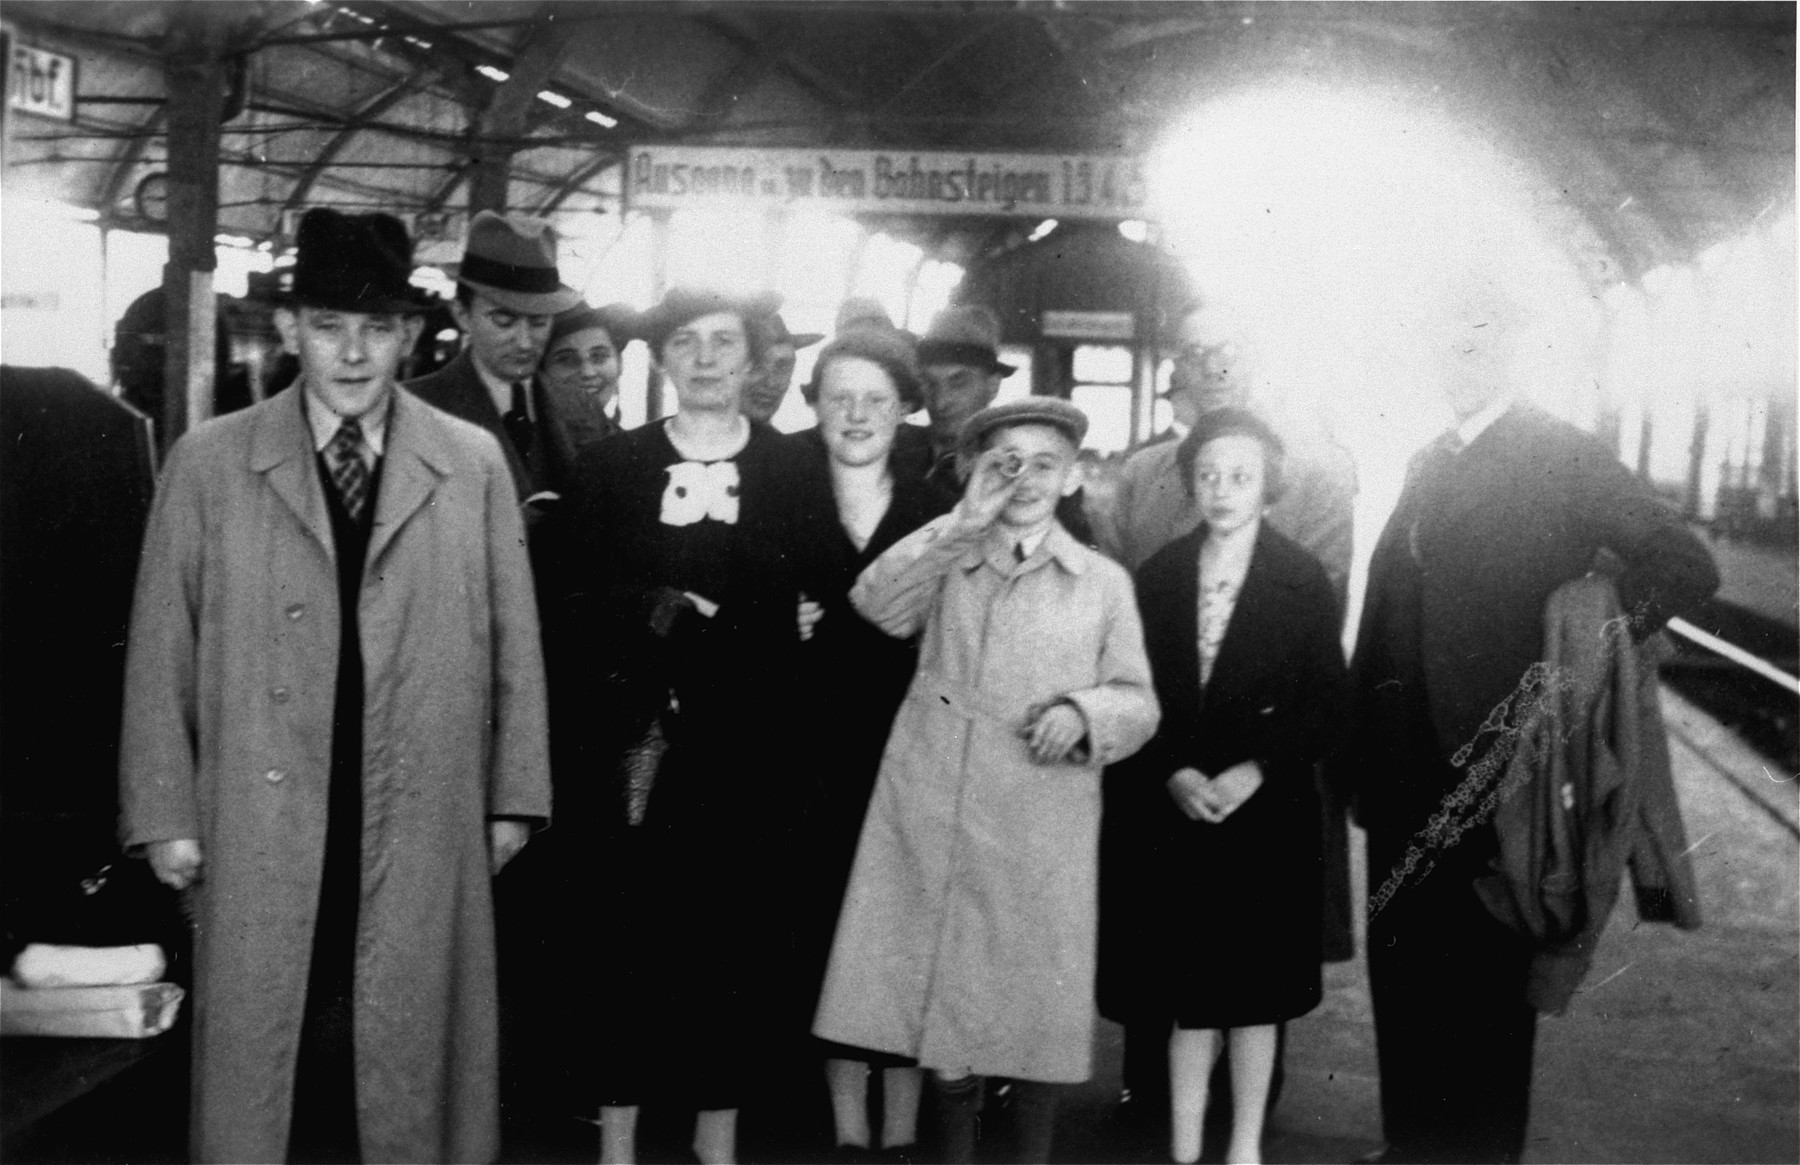 A Jewish family poses at the train station before leaving Germany for the United States.  Among those pictured are Sol and Henrietta Meyer with their son Harvey.  The Meyers are the aunt and uncle of the donor, Jill Berg Pauly,